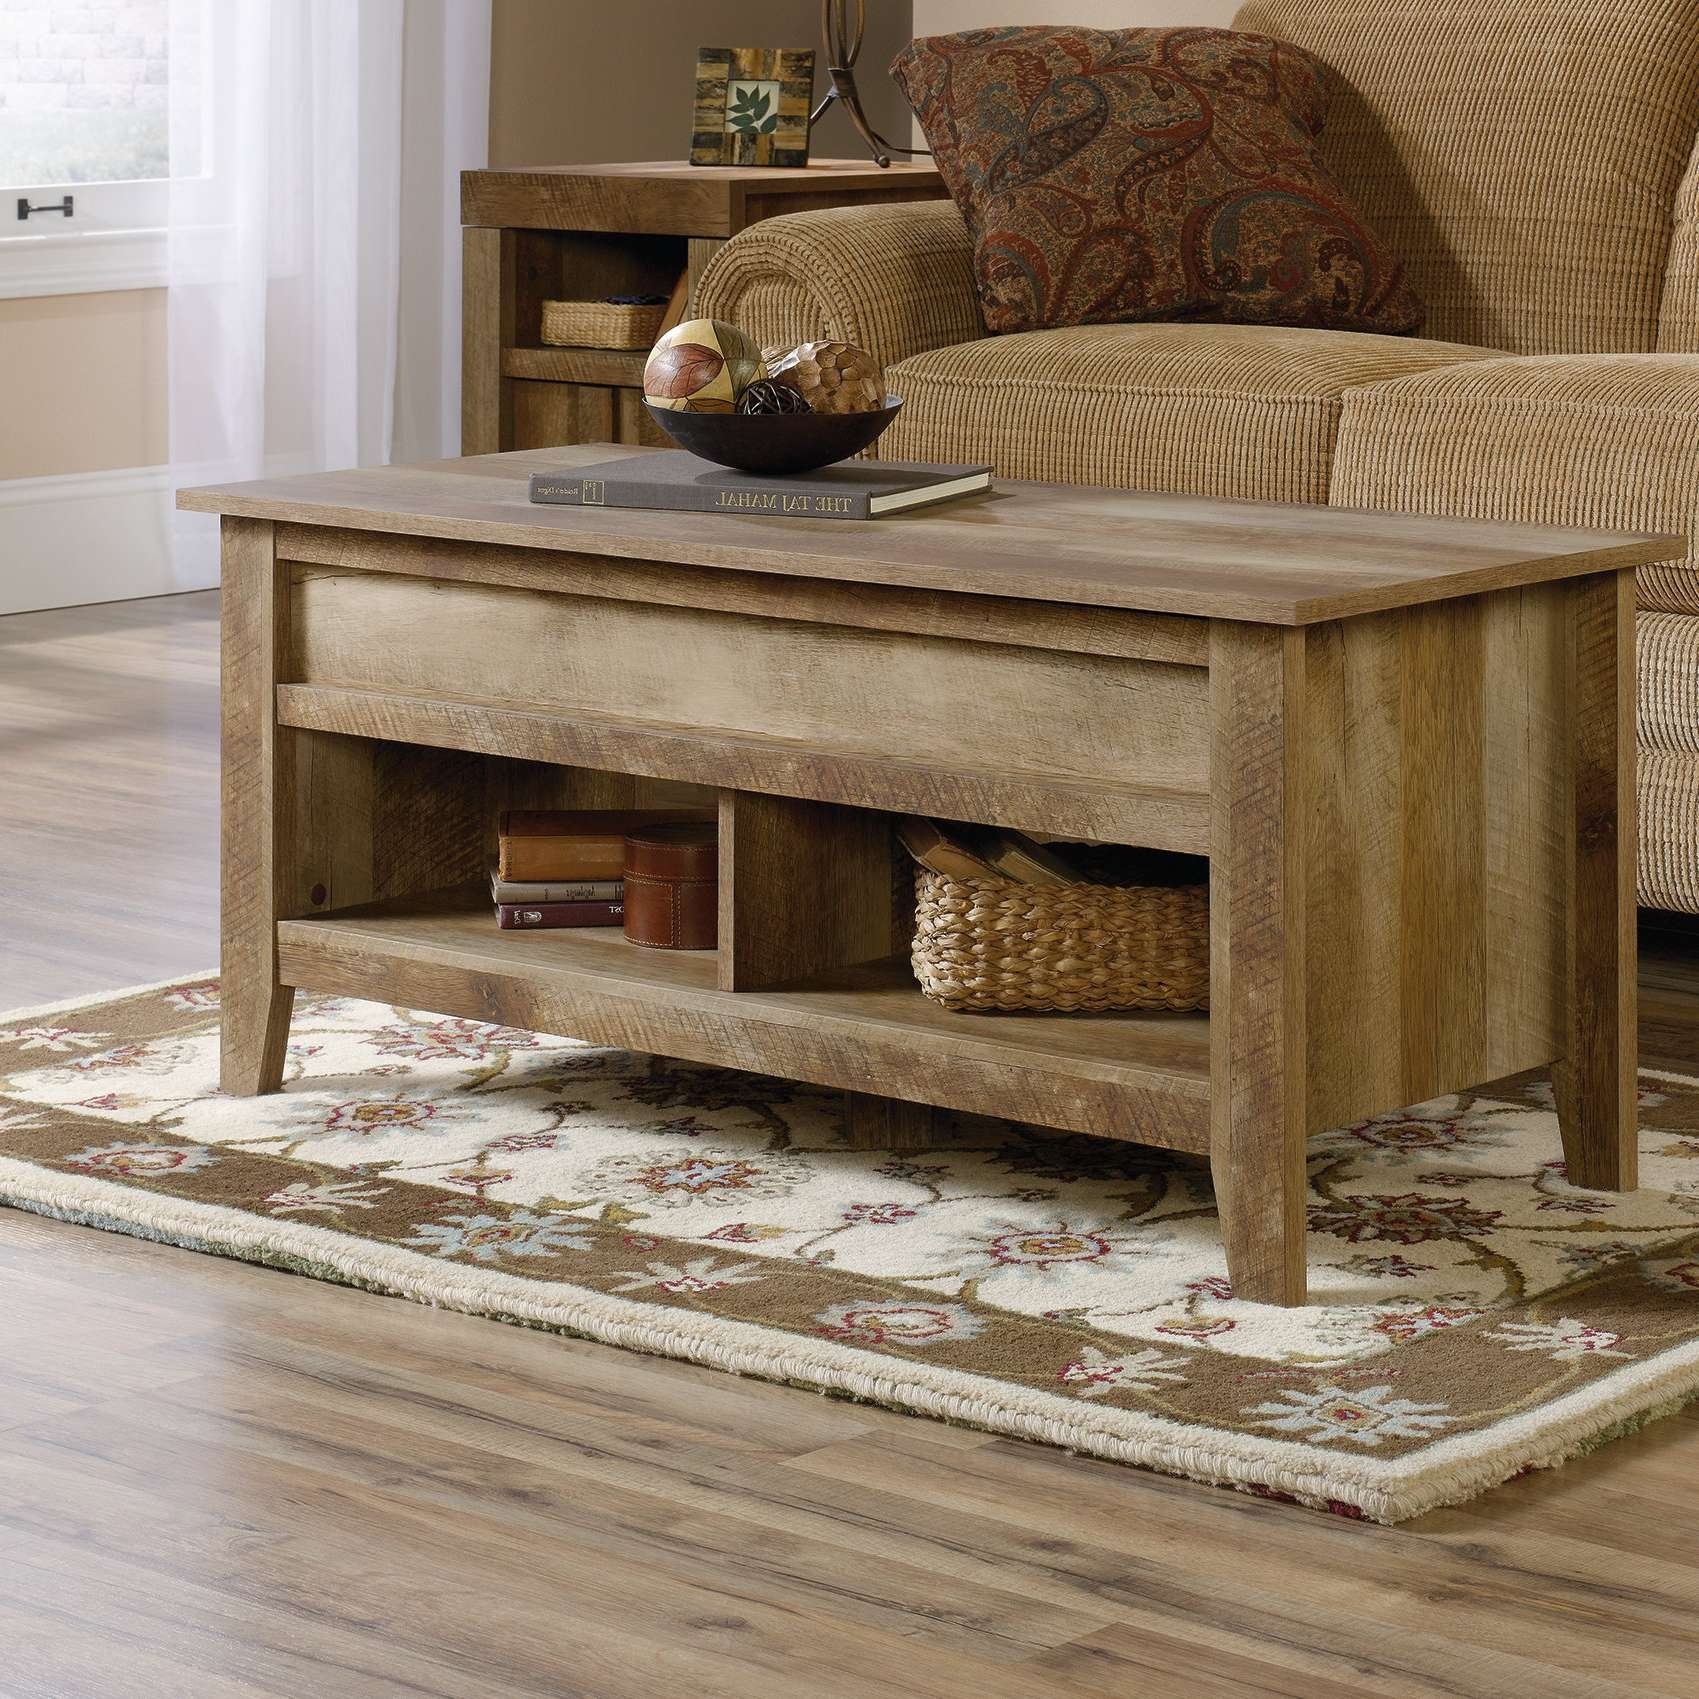 Newest Elevating Coffee Tables Pertaining To Lift Top Coffee Tables You'll Love (View 18 of 20)